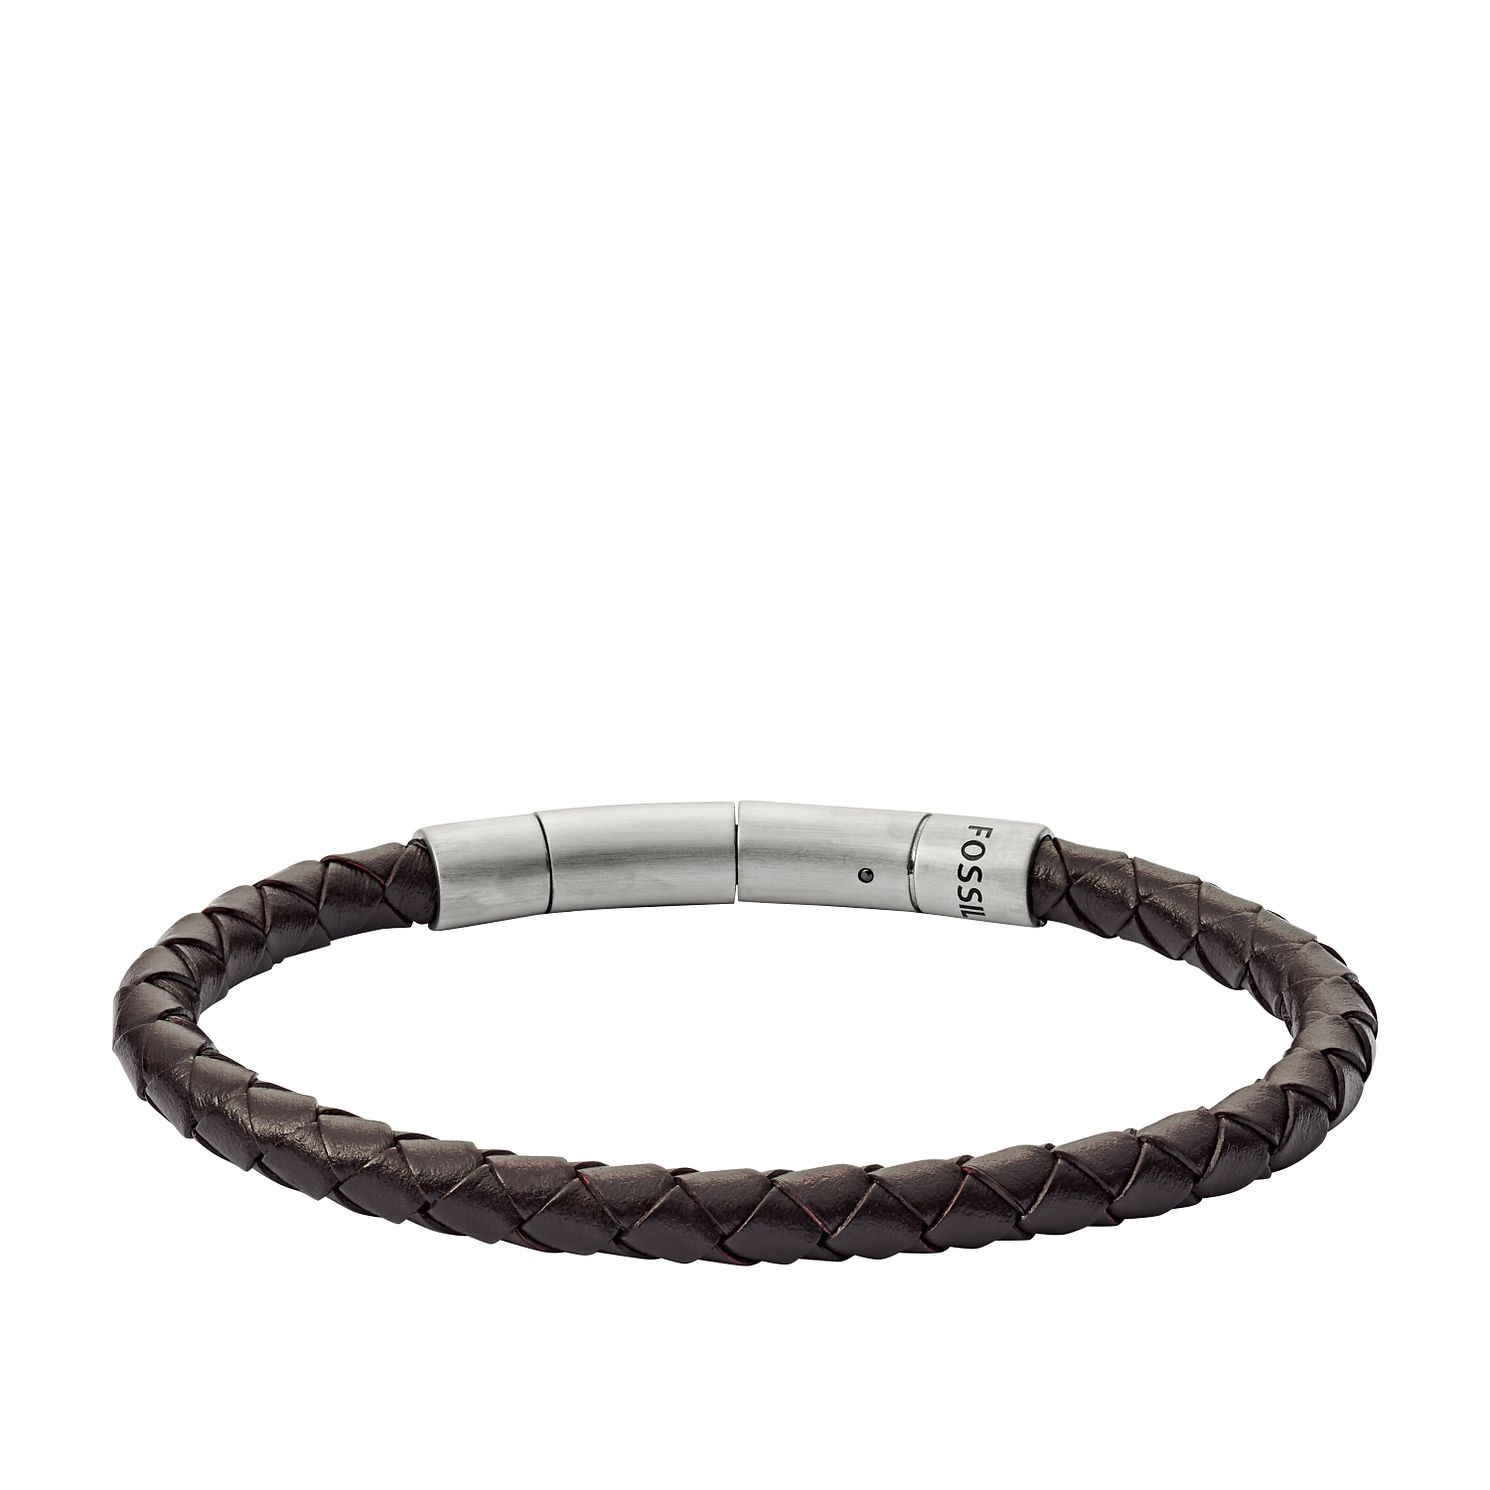 Fossil Men's Brown Leather Plait Bracelet - Product number 3664236